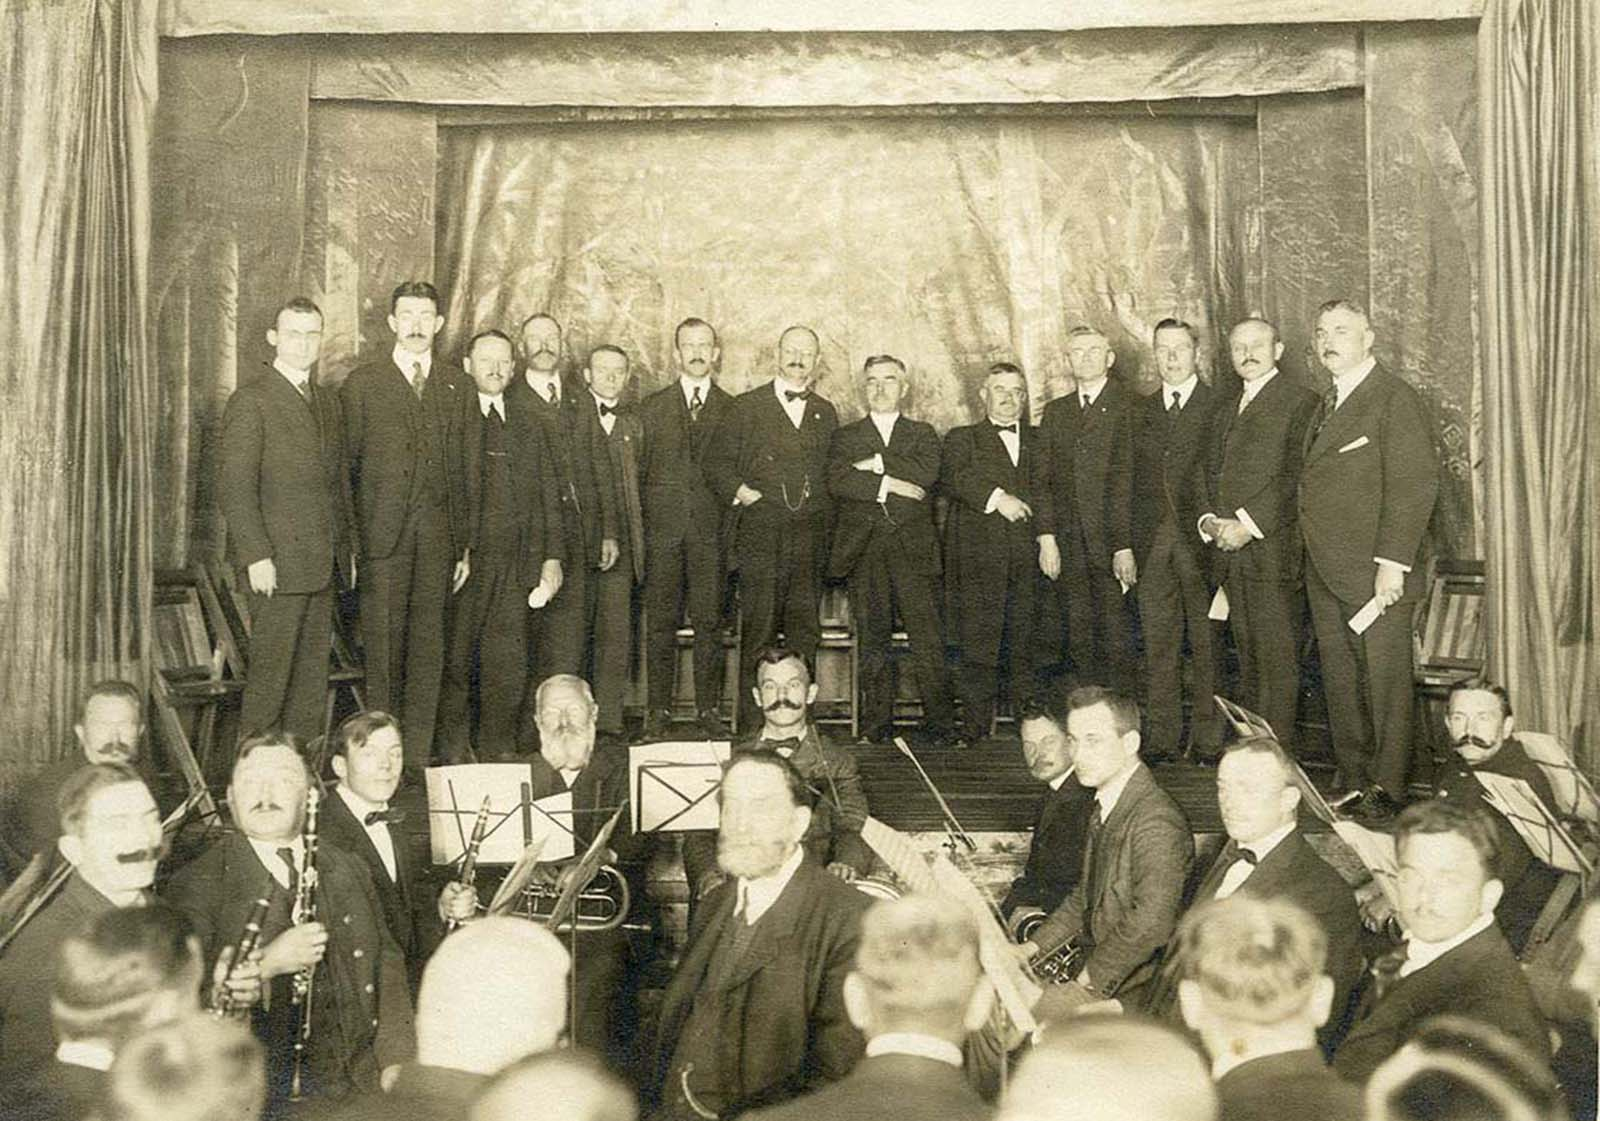 A formal concert with internees and the German Imperial Band.